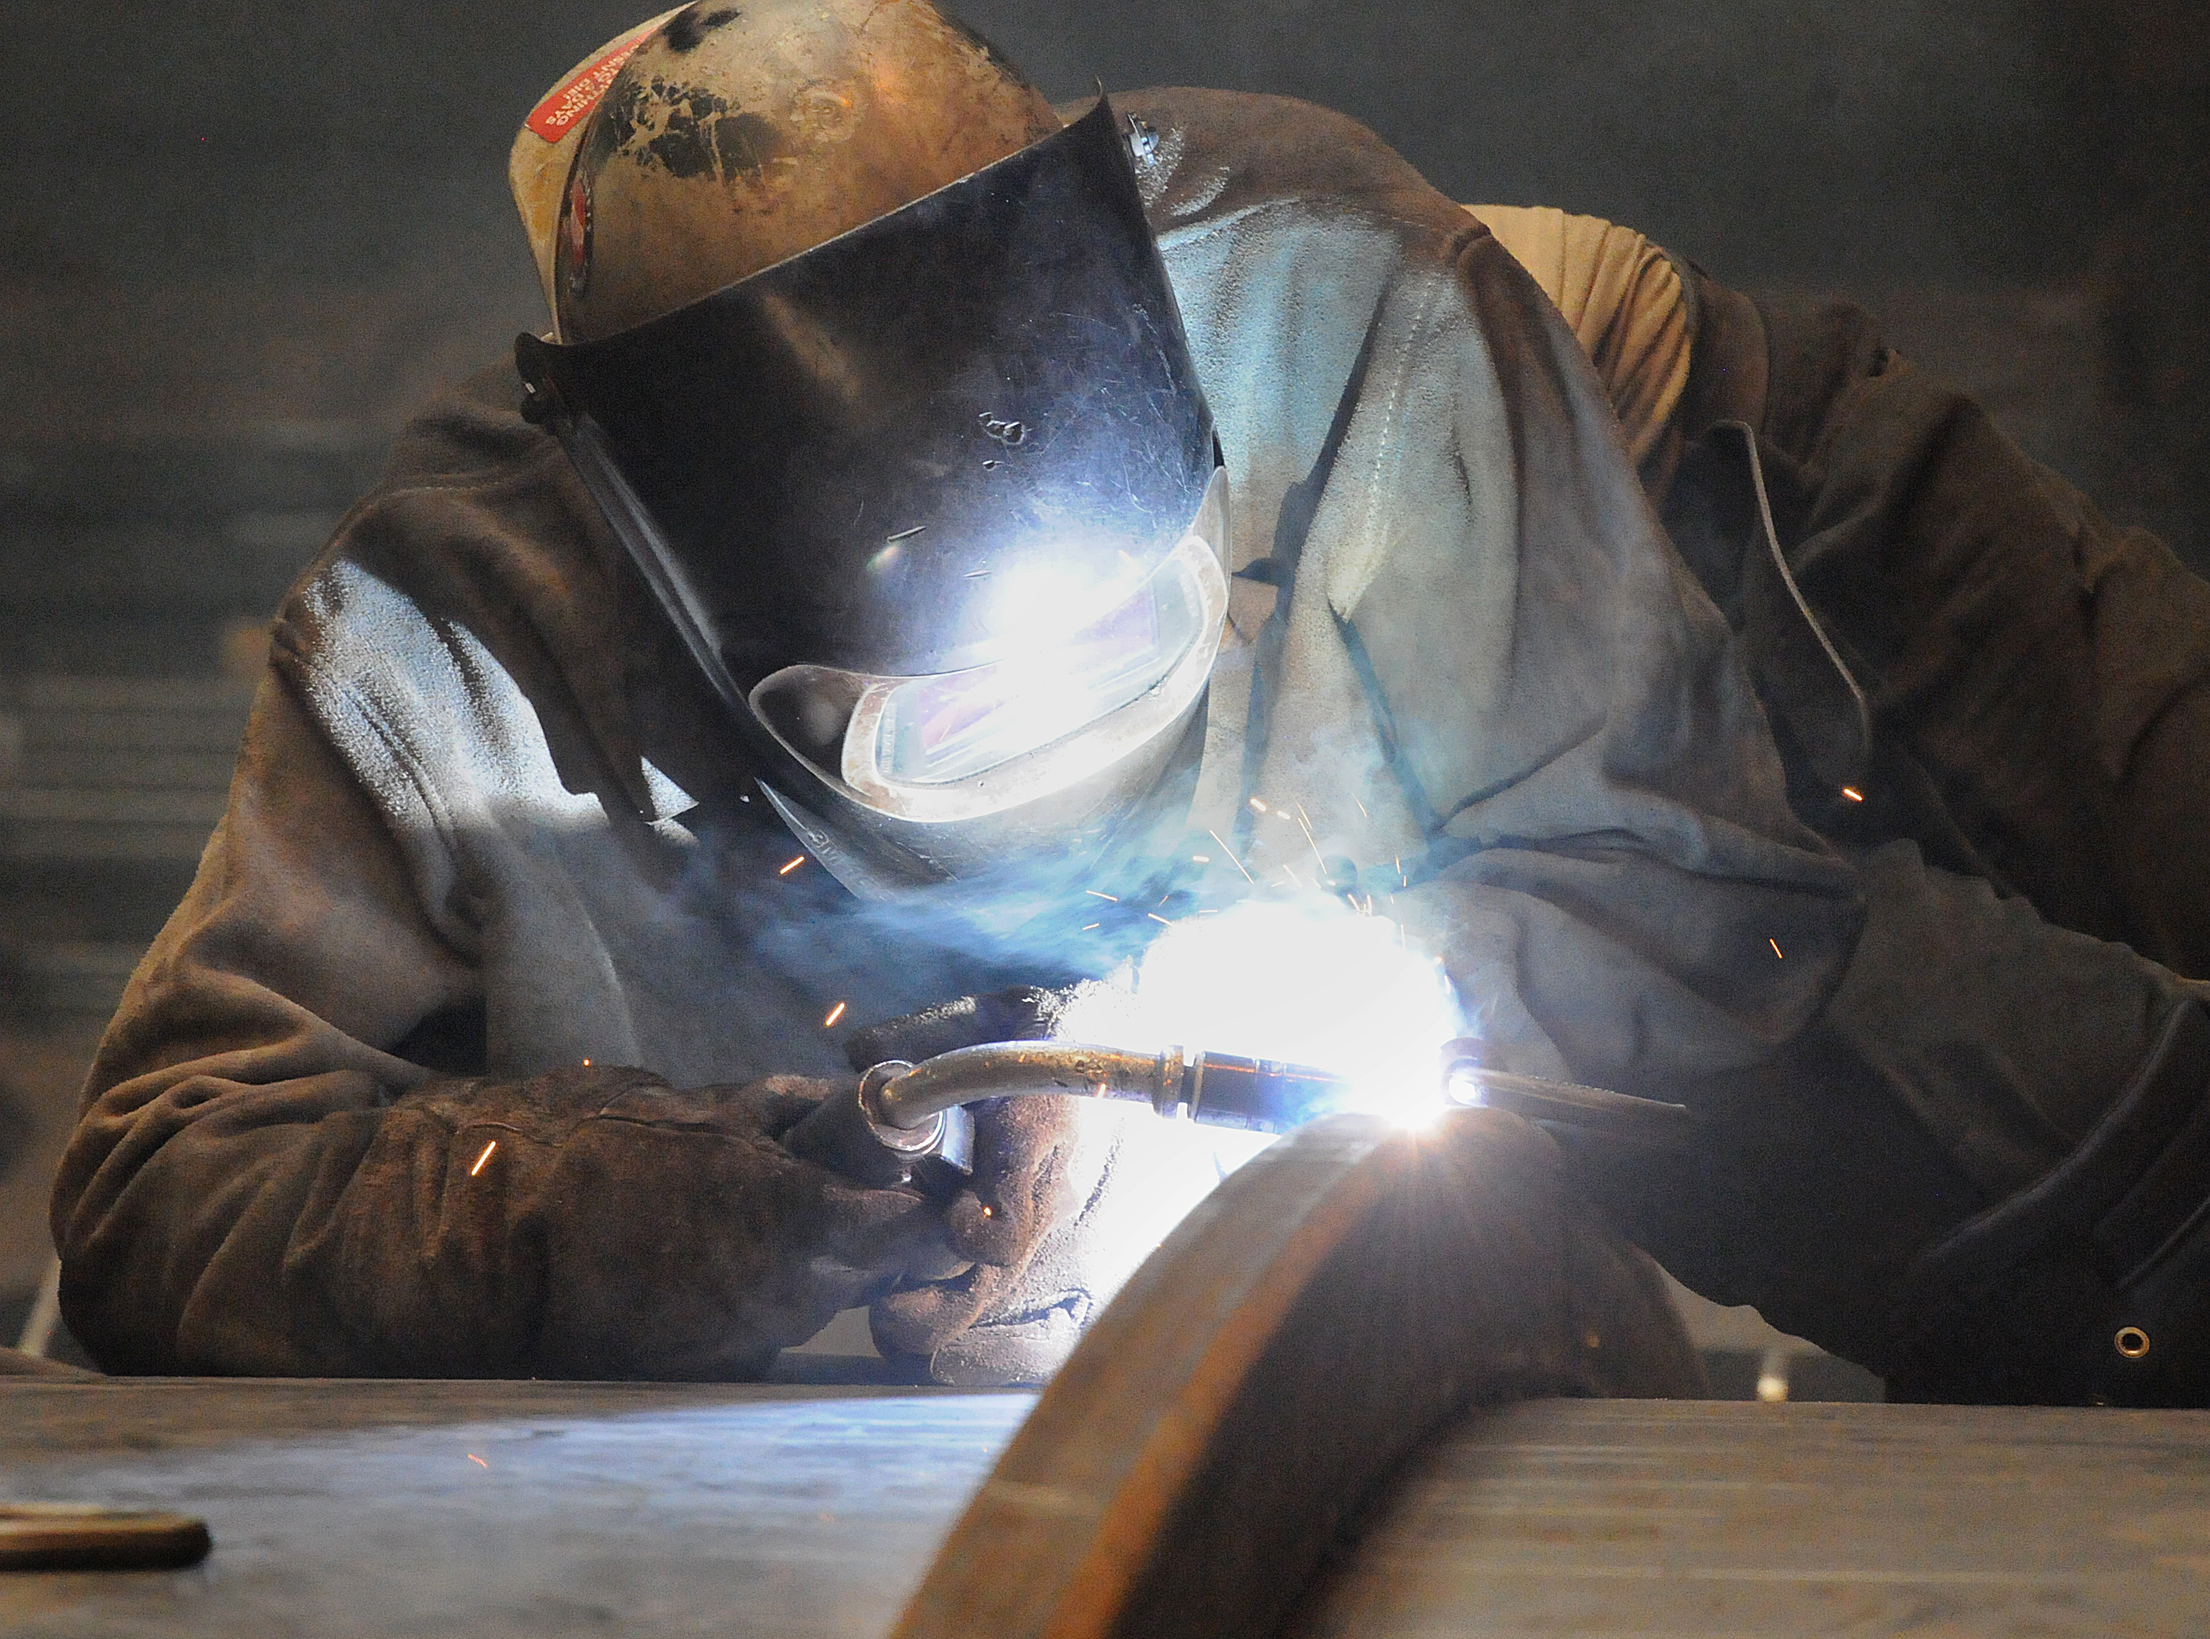 20140625radETCJohnstownBiz11-10 An ETC welder wears protective gear as he works on a piece of equipment. The company manufactures frack tanks, sand separators and other midstream drilling instruments.